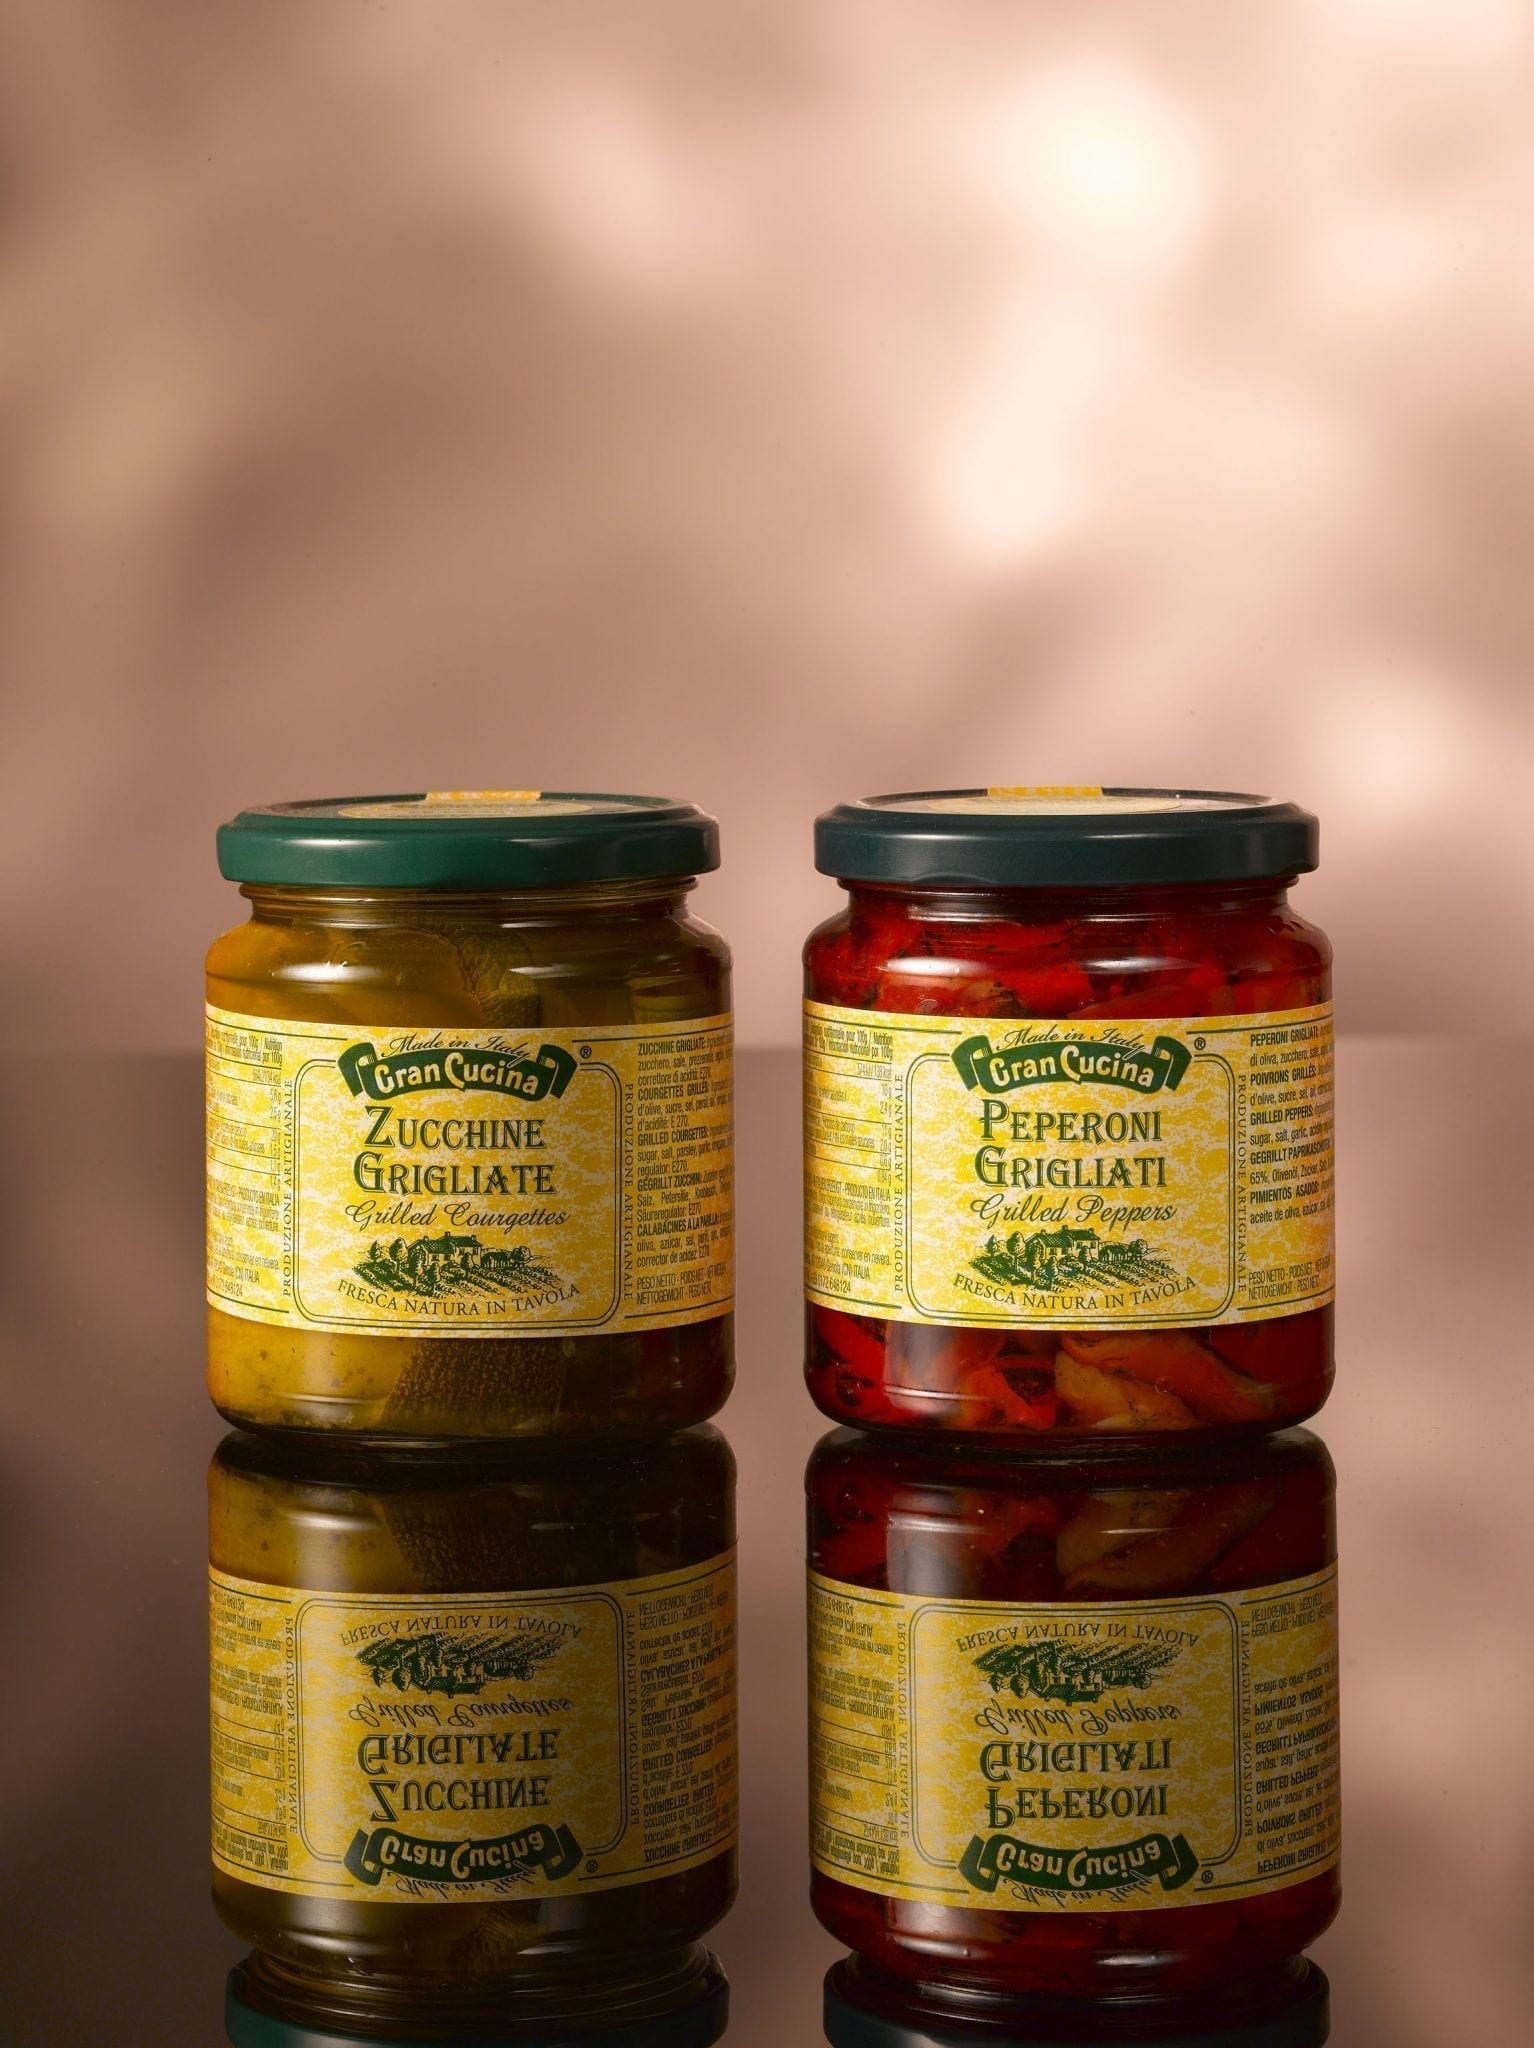 Cran Cucina, grilled peppers in olive oil 280 gr